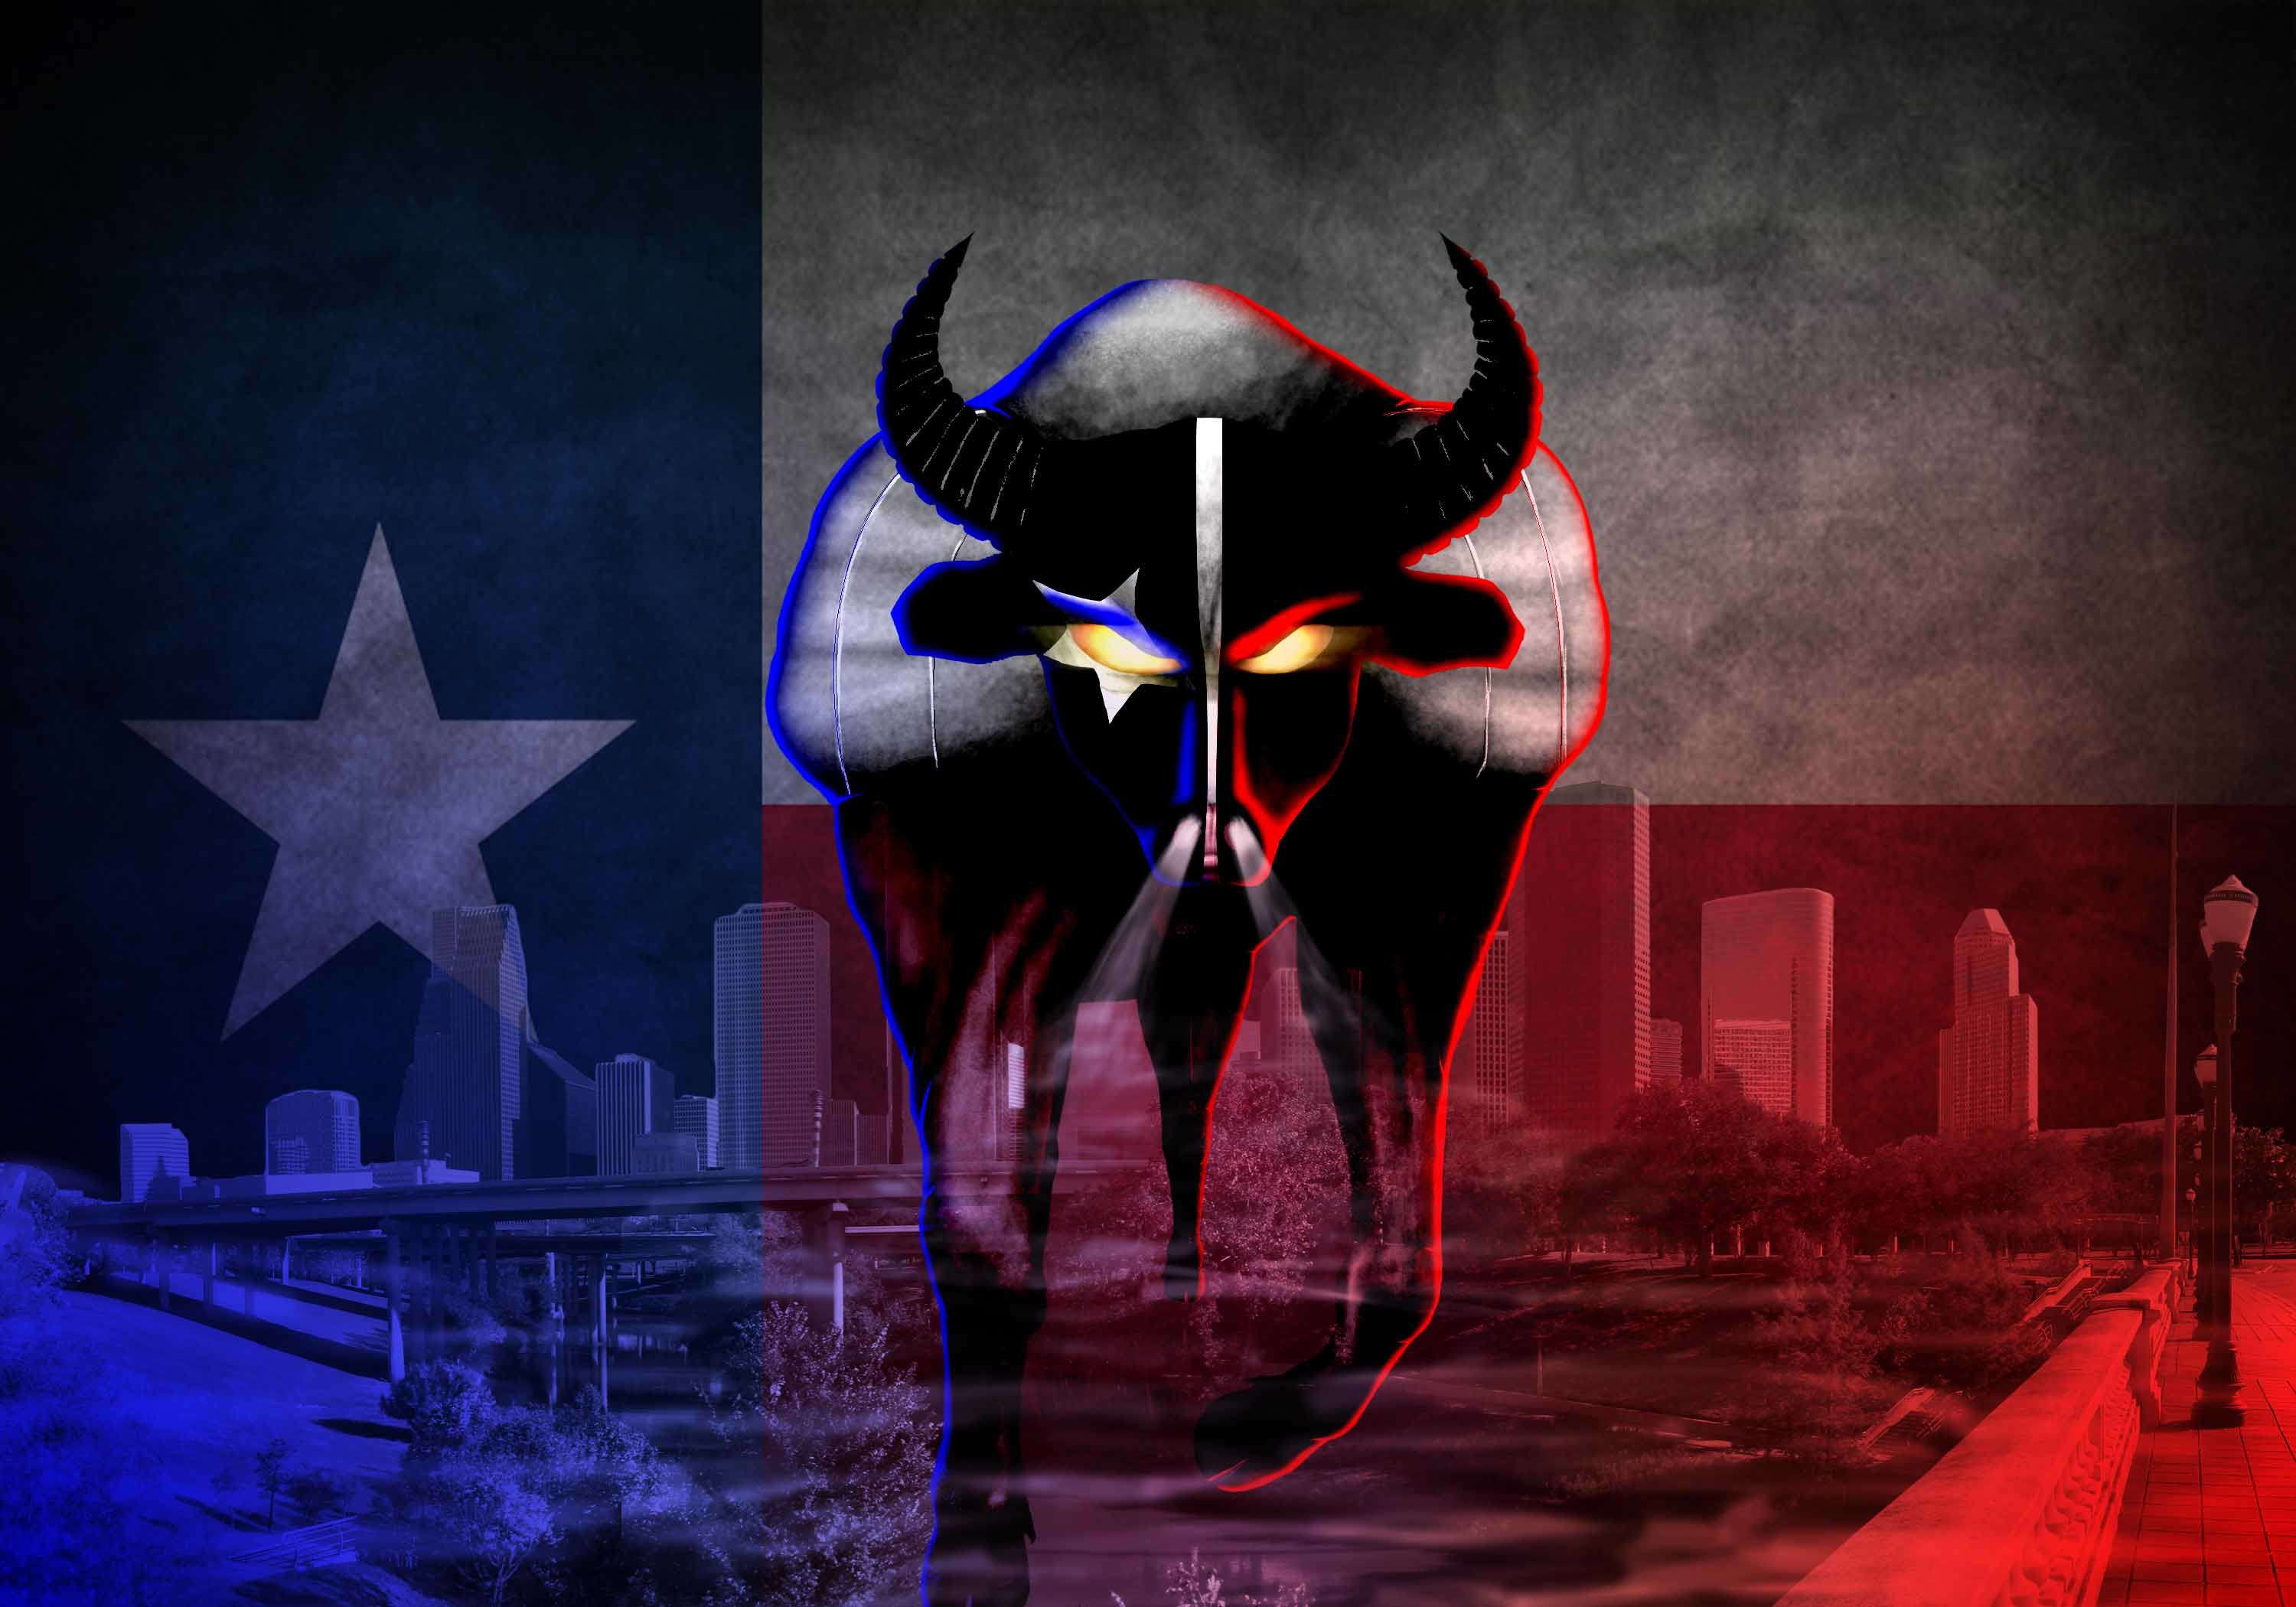 Houston Texans 2014 NFL Bull Wallpaper Wide or HD | Sports Wallpapers